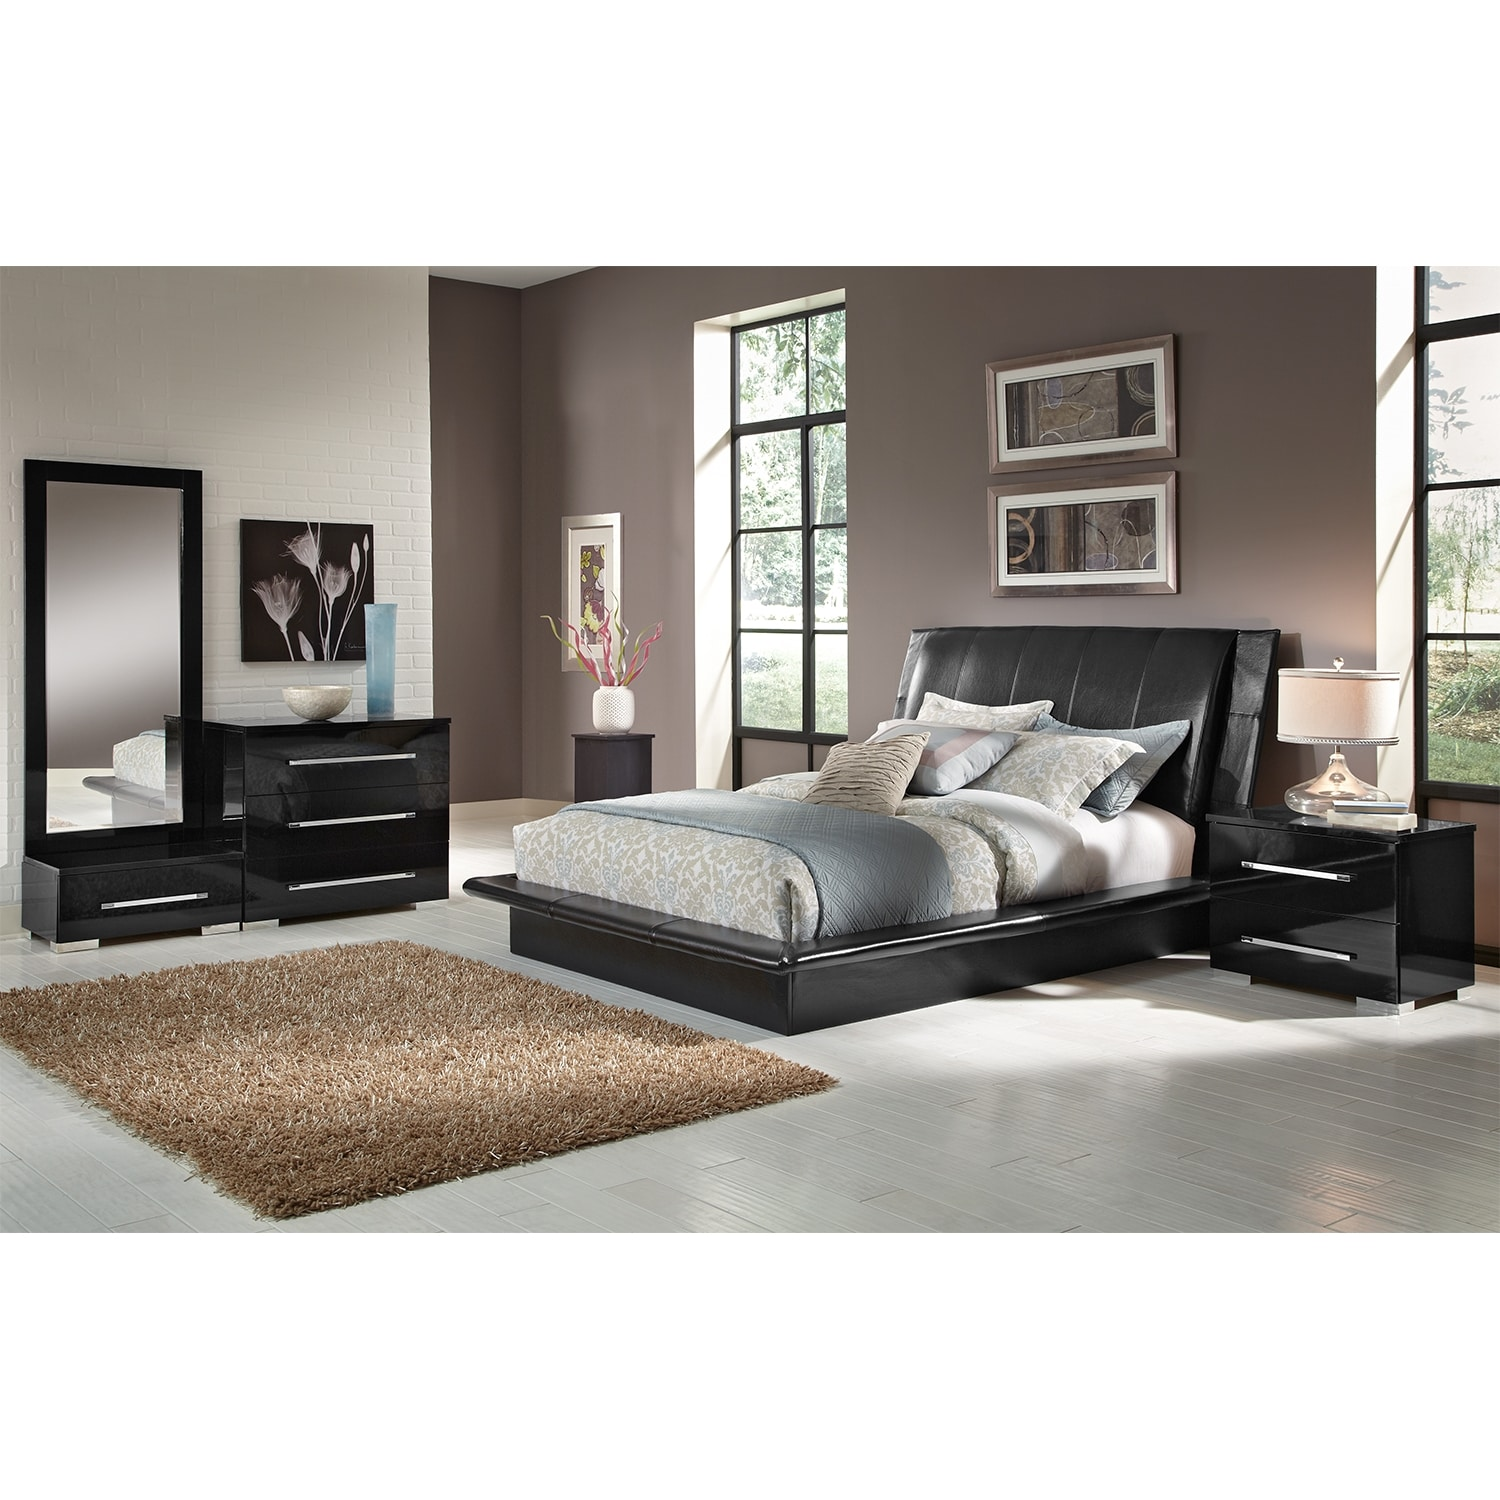 Bedroom Furniture - Dimora 6-Piece Queen Upholstered Bedroom Set - Black